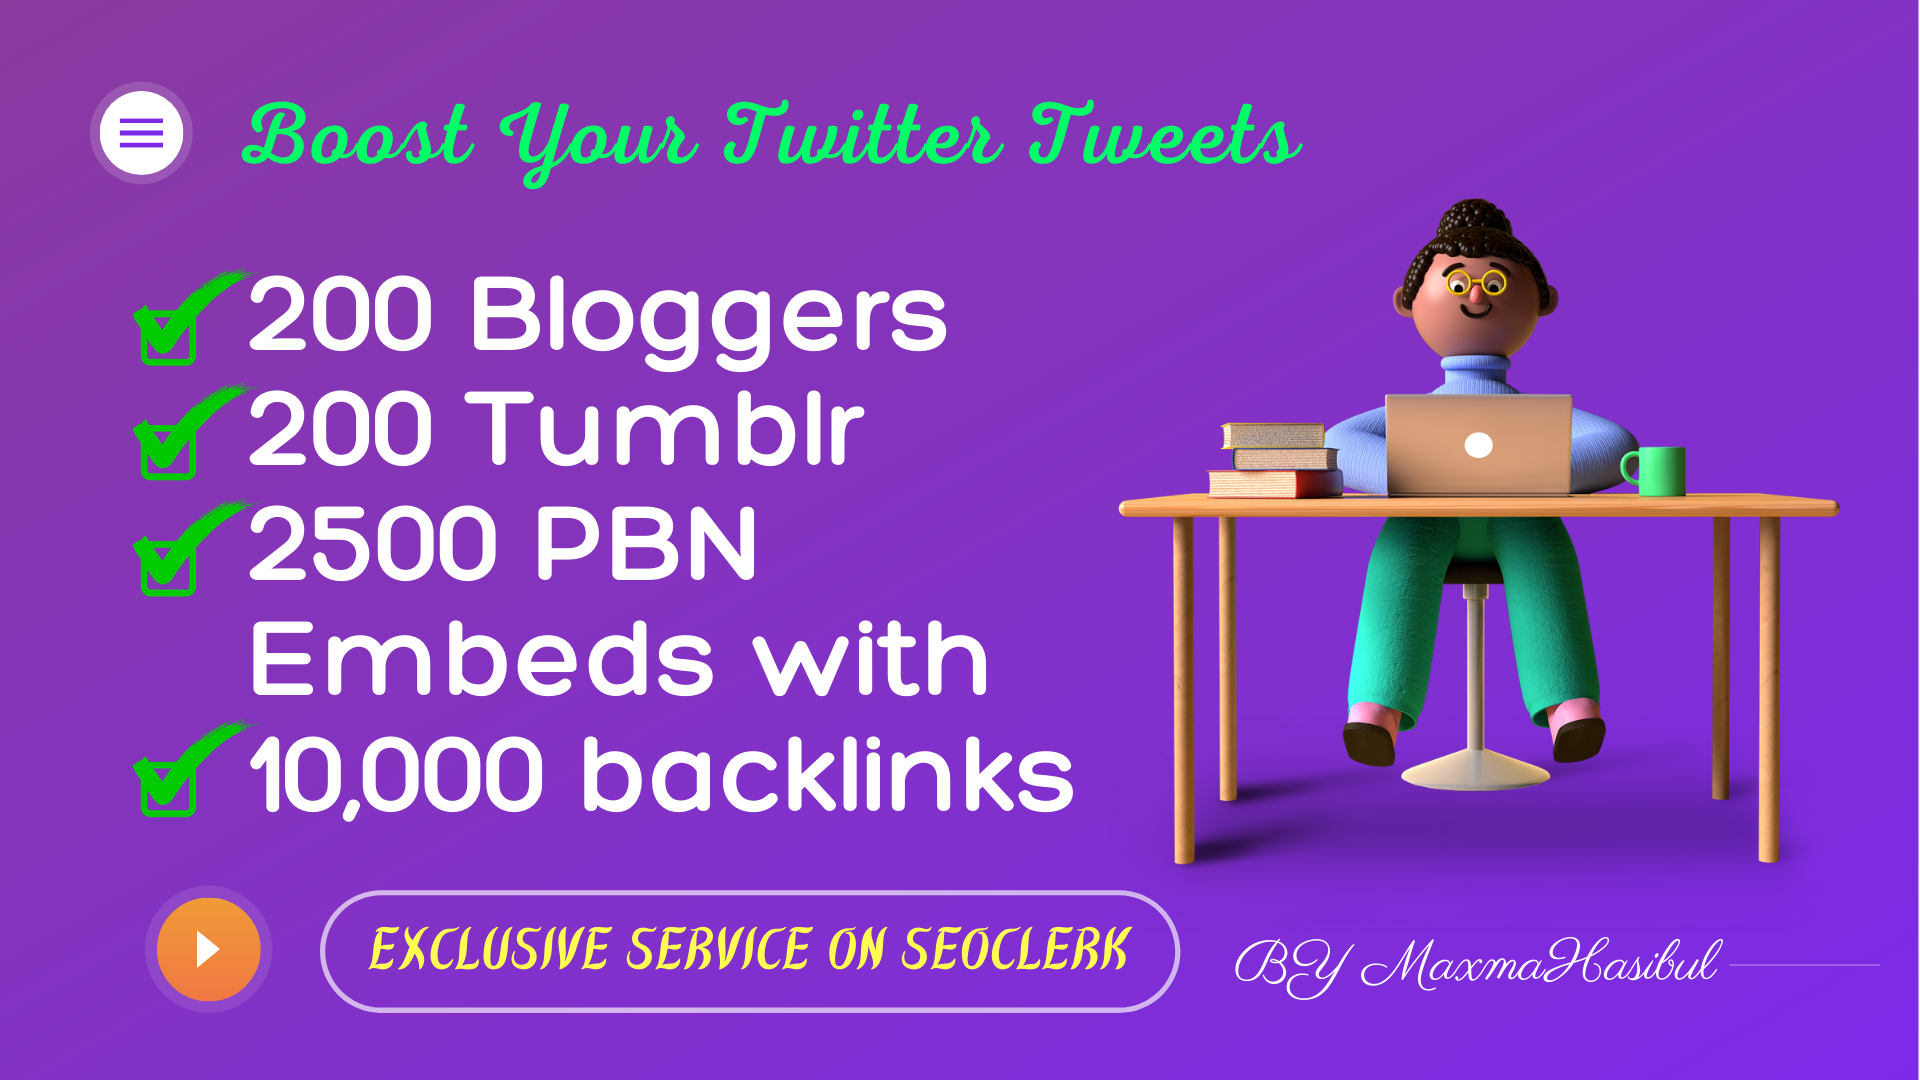 Twitter Tweet SEO Embeds on 200 Blogger,  200 Tumblr,  2500 PBN Blog Embeds with 10,000 Backlinks